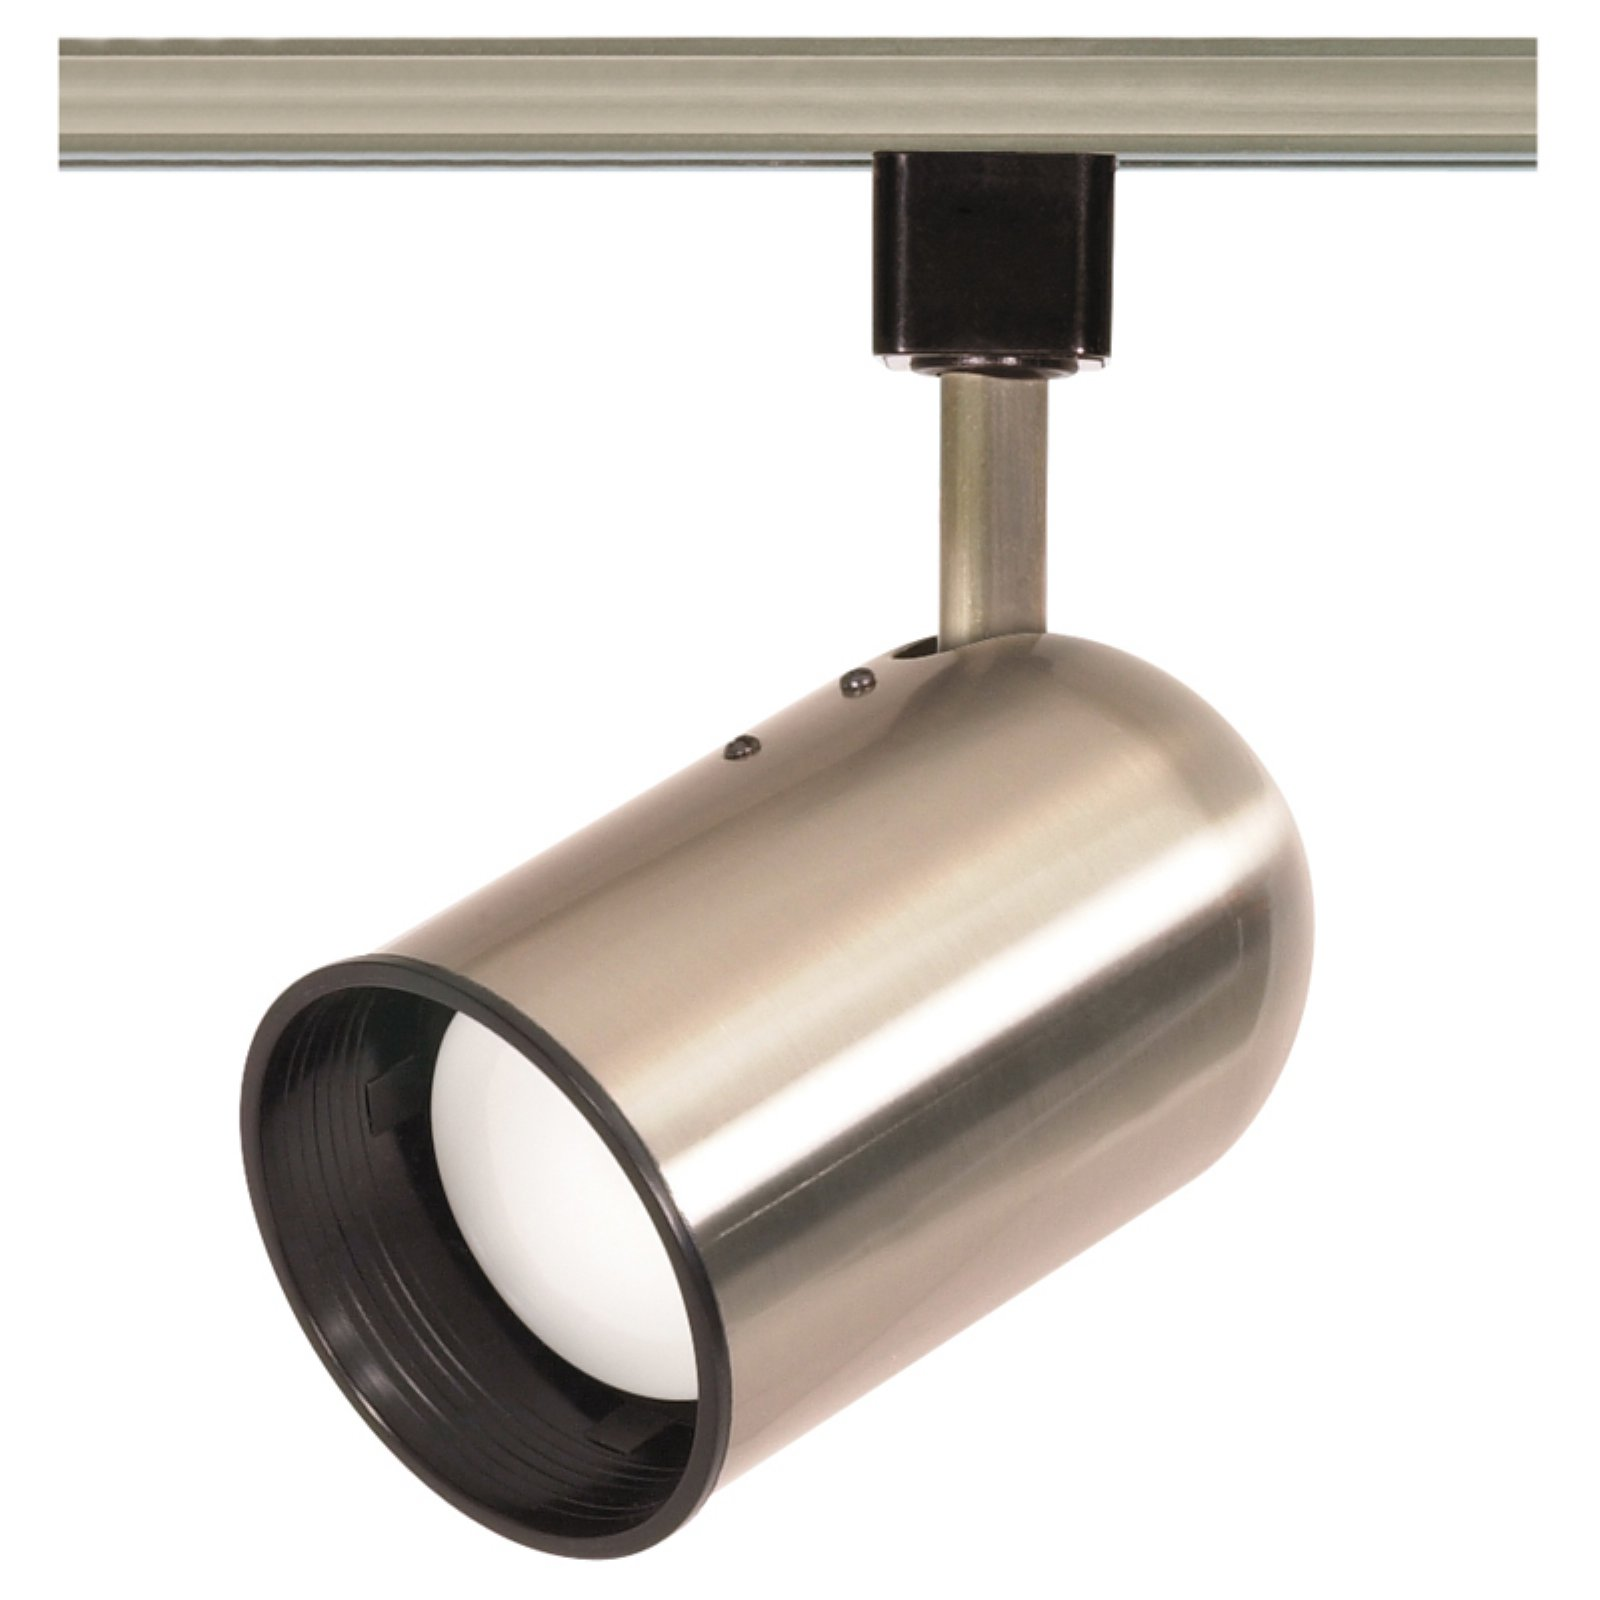 Nuvo TH Bullet Track Light Head by Nuvo Lighting